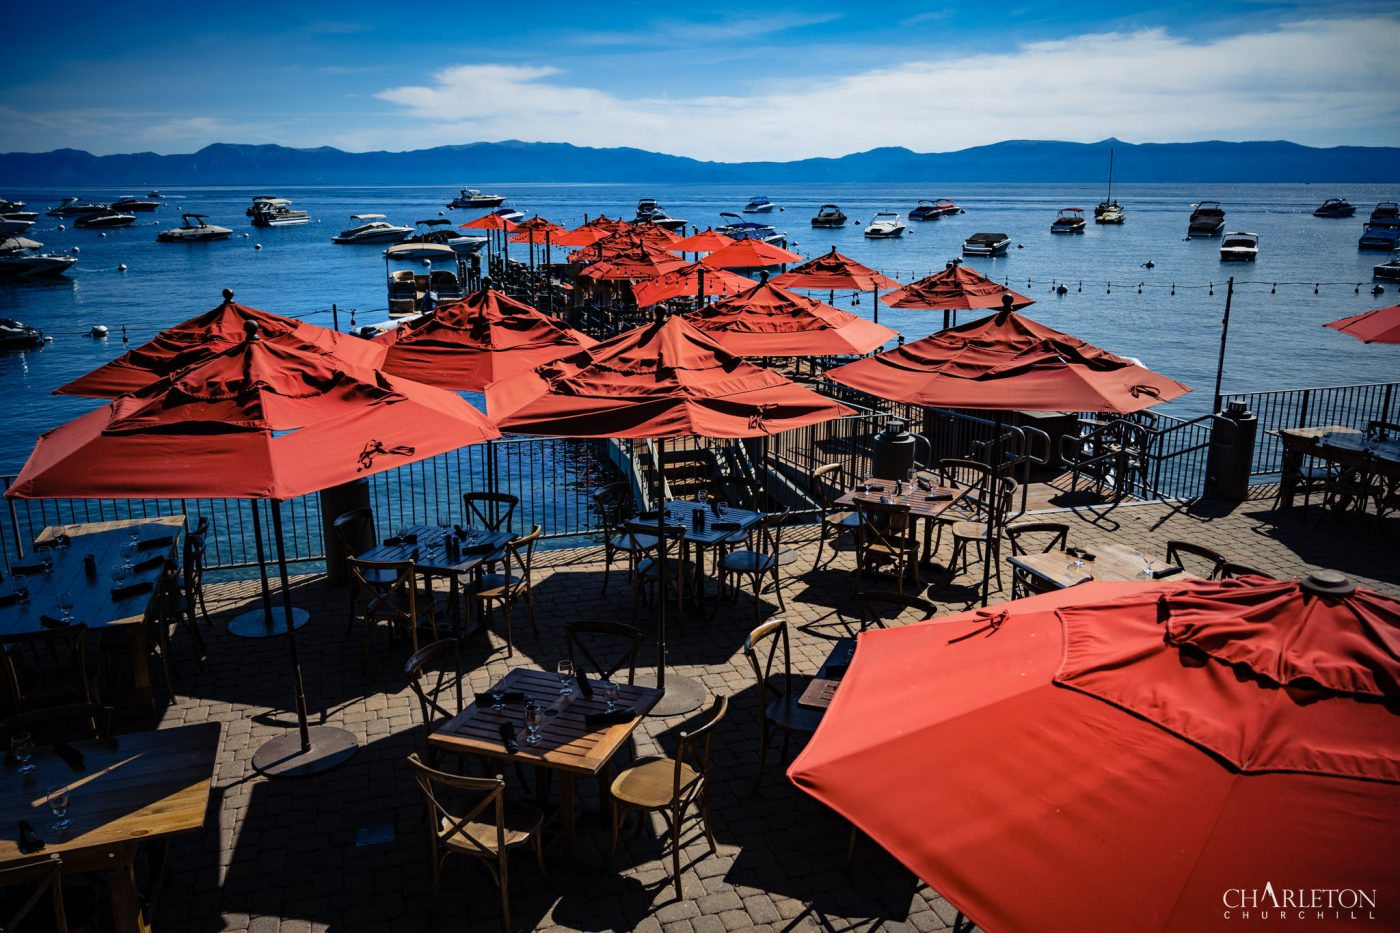 the dock of lake tahoe in West shore with red umbrellas for shade